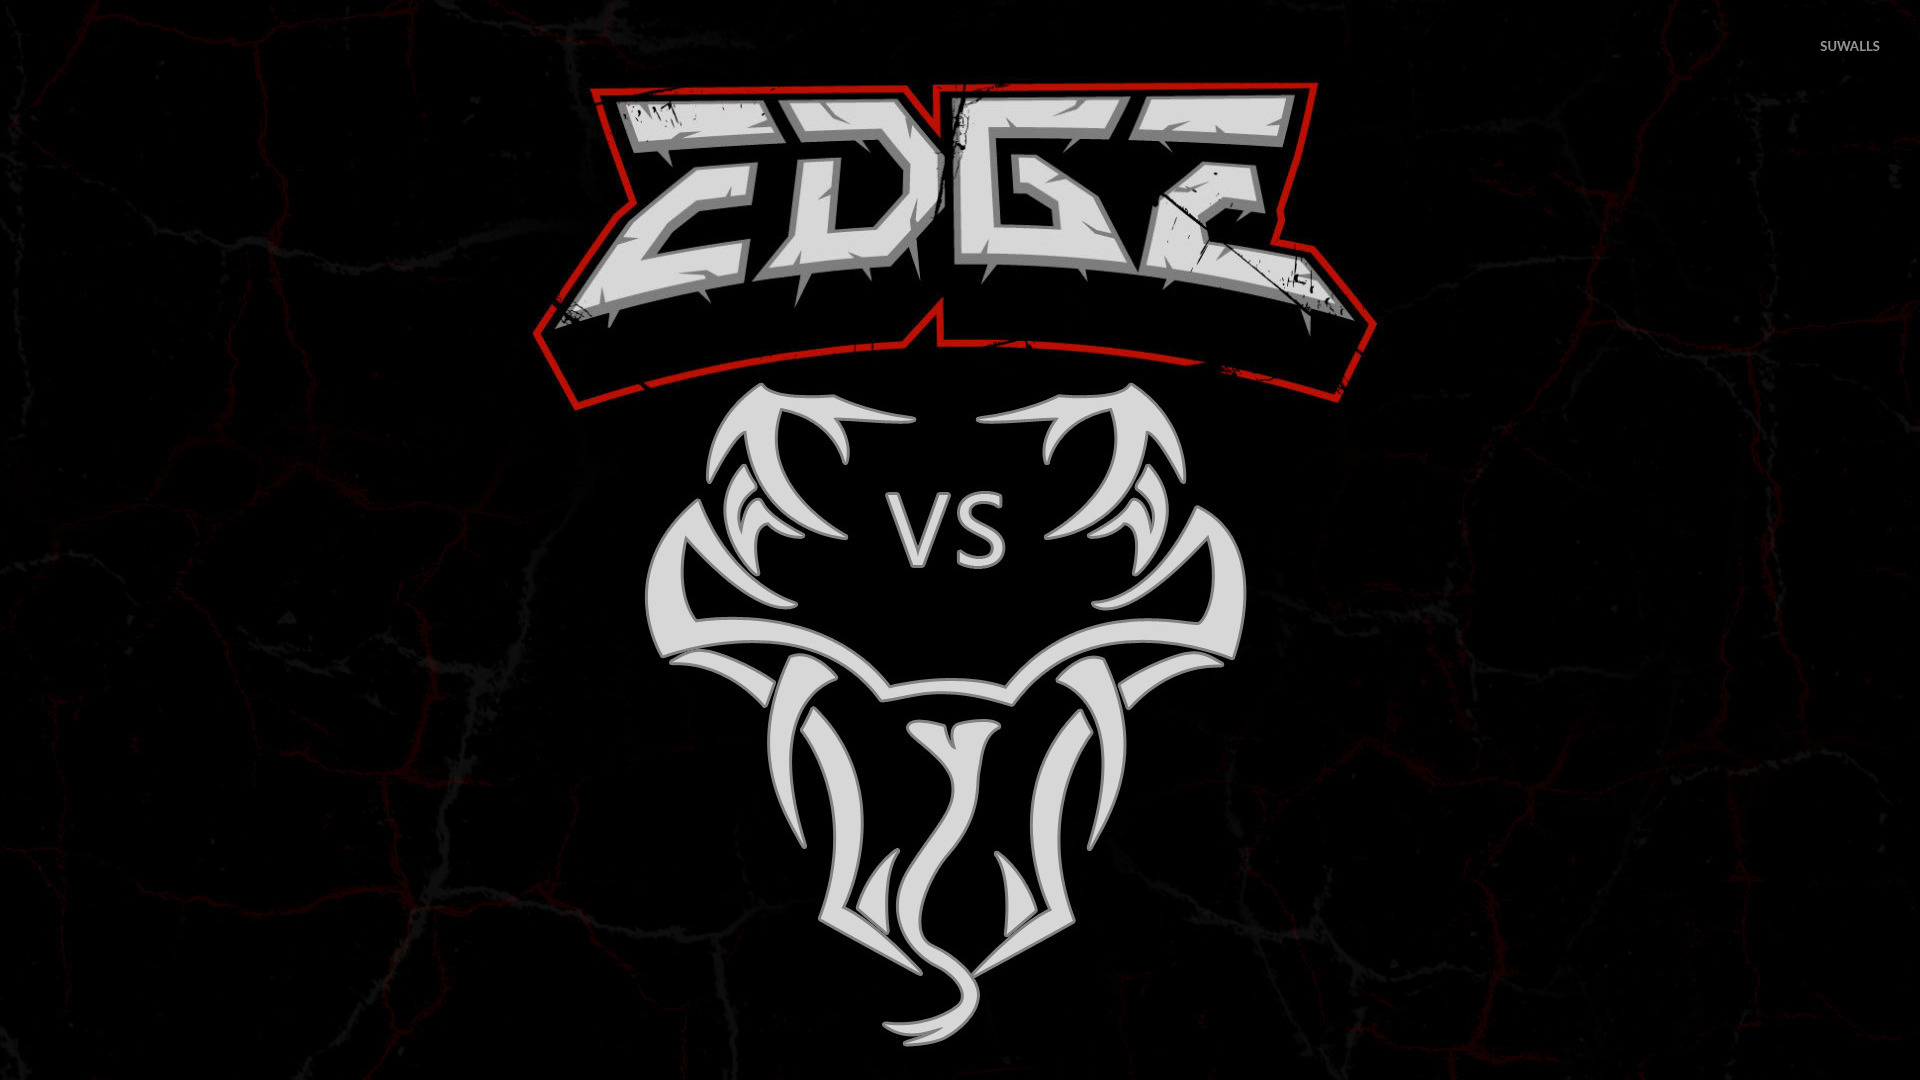 Edge vs Randy Orton logo wallpaper   Sport wallpapers   21150 1920x1080